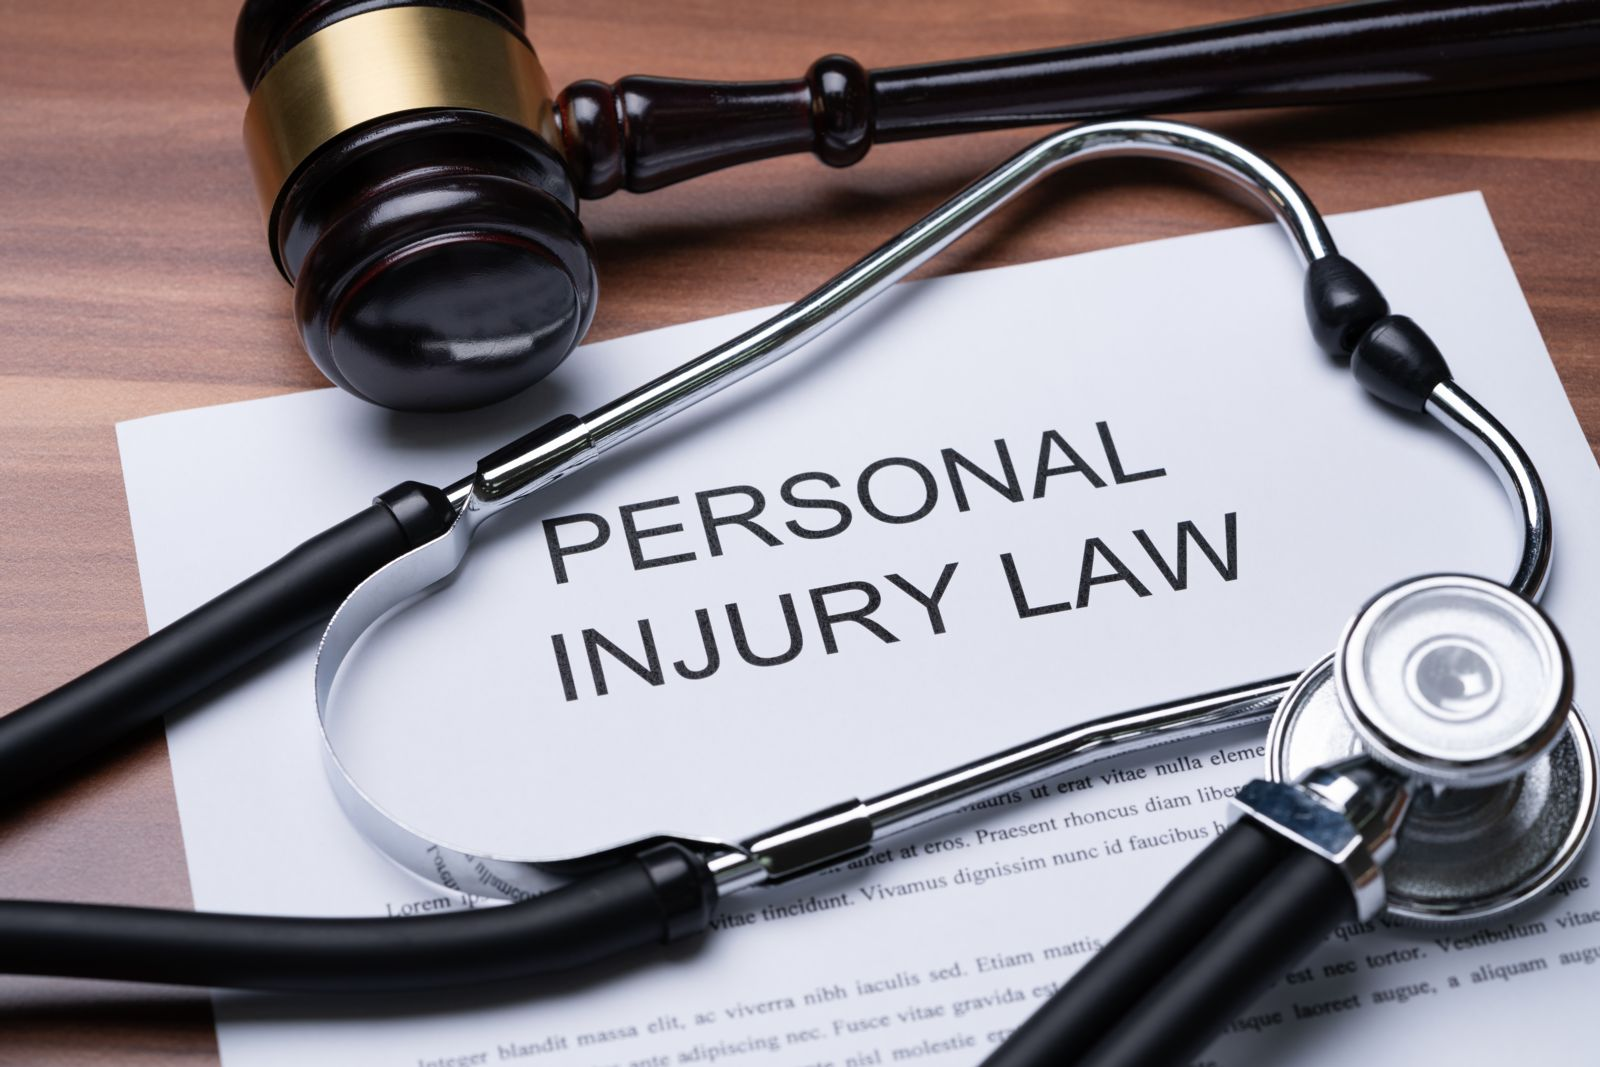 Tennessee Personal Injury Lawyers Weir and Kestner